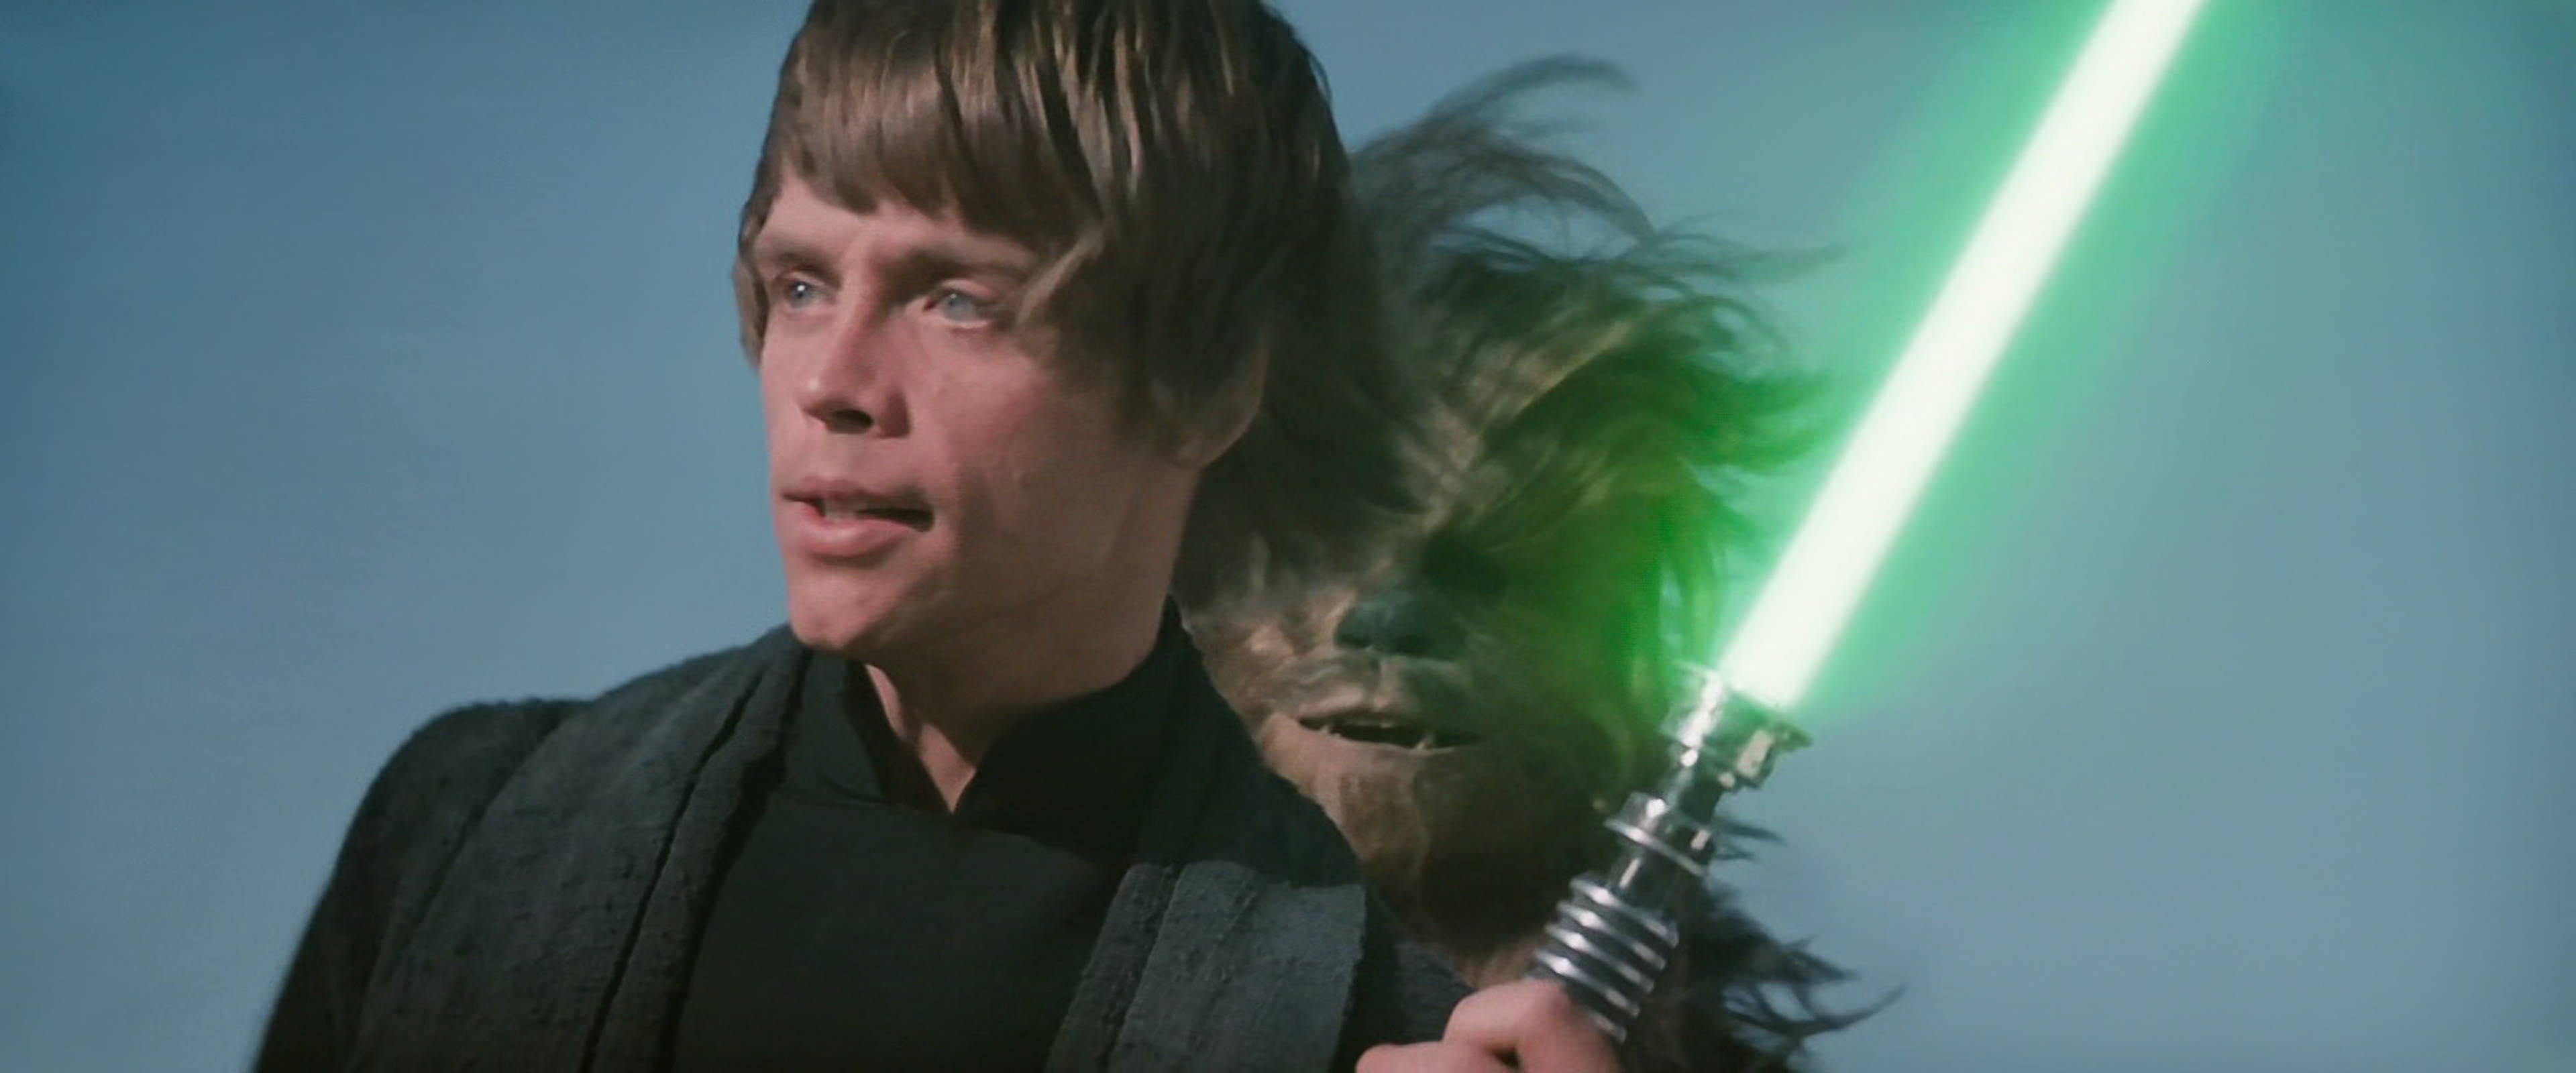 Luke Sail Barge Green Lightsaber Return of the Jedi | kessel korner